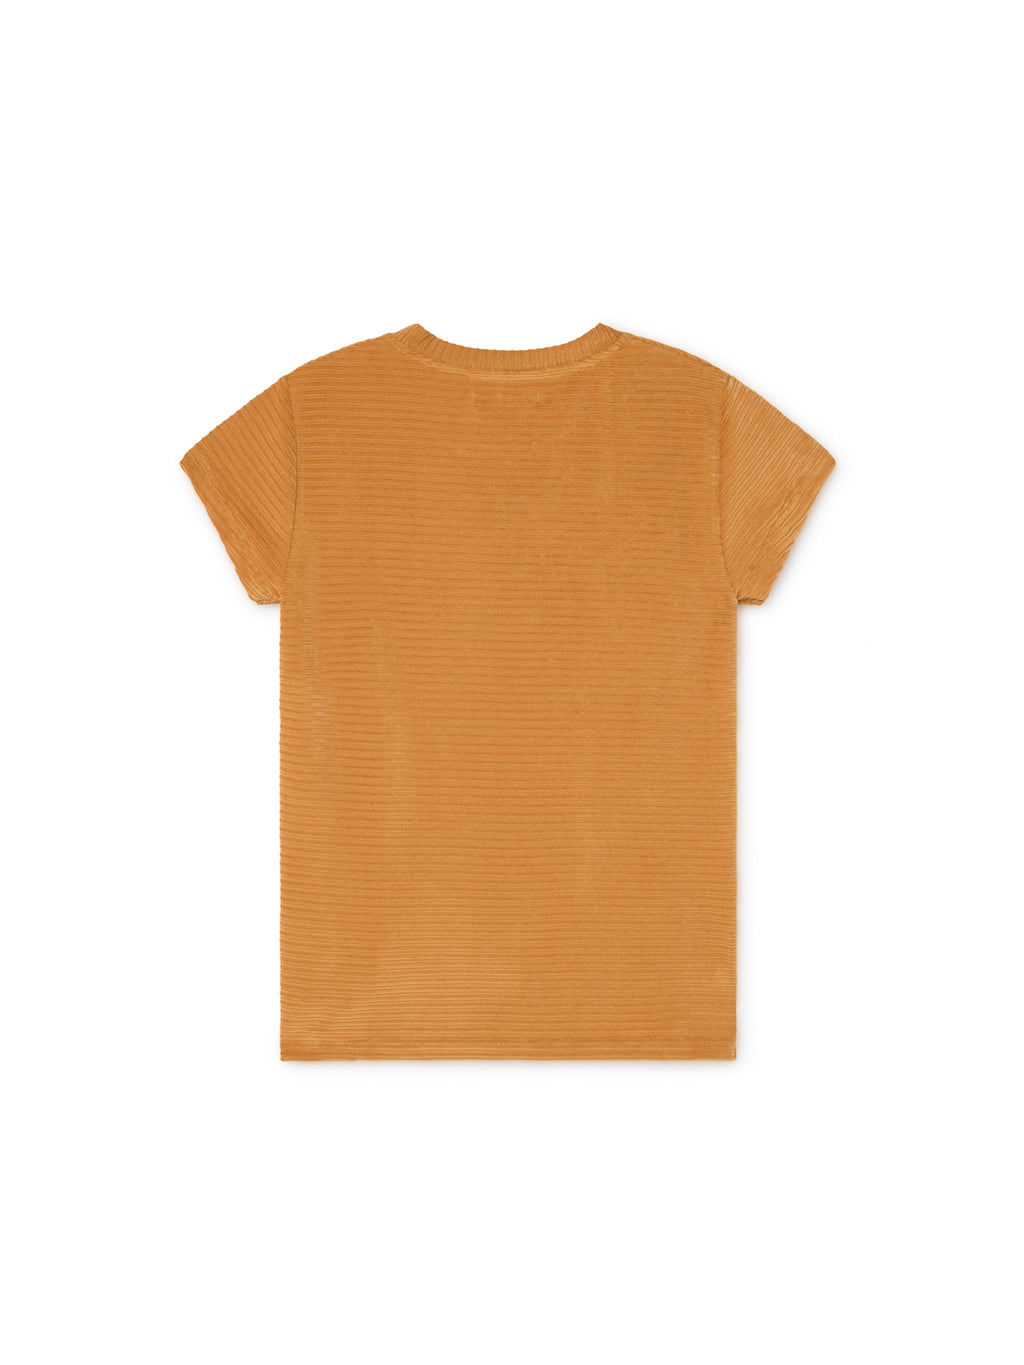 TWOTHIRDS Womens Top: Ariadna - Mustard Back